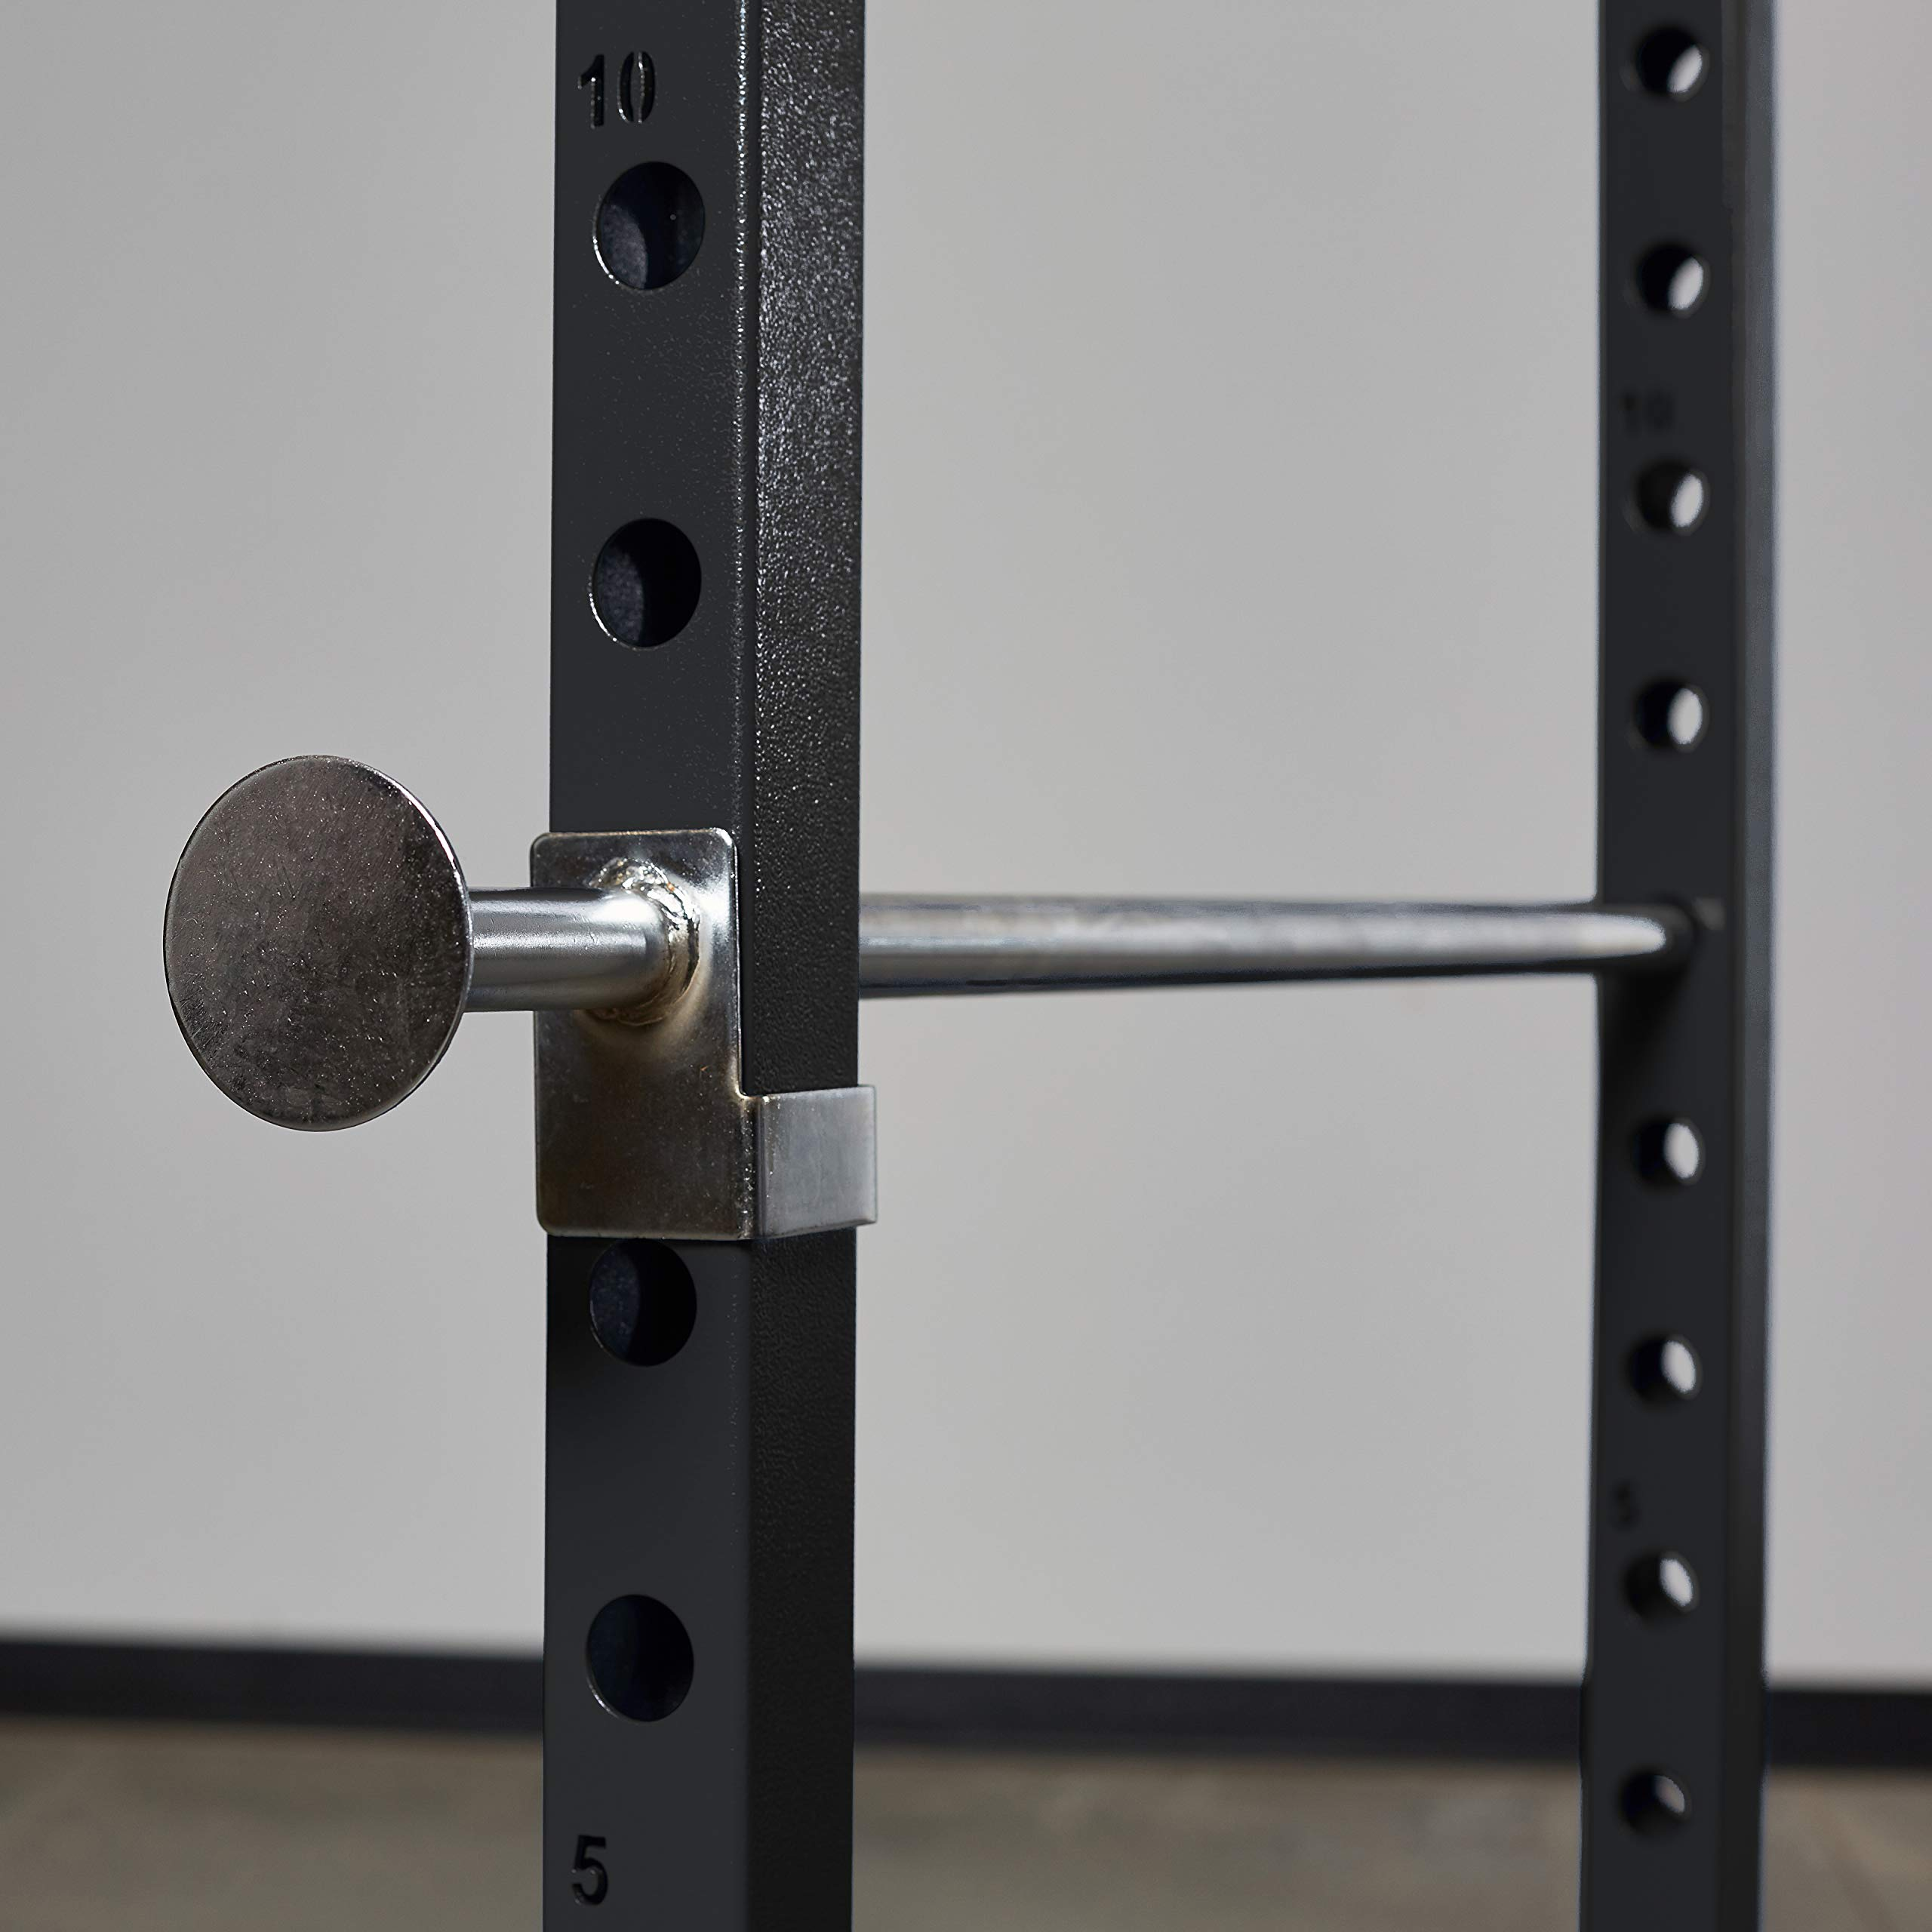 Rep PR-1100 Power Rack - 1,000 lbs Rated Lifting Cage for Weight Training (Metallic Black Power Rack, No Bench) by Rep Fitness (Image #3)